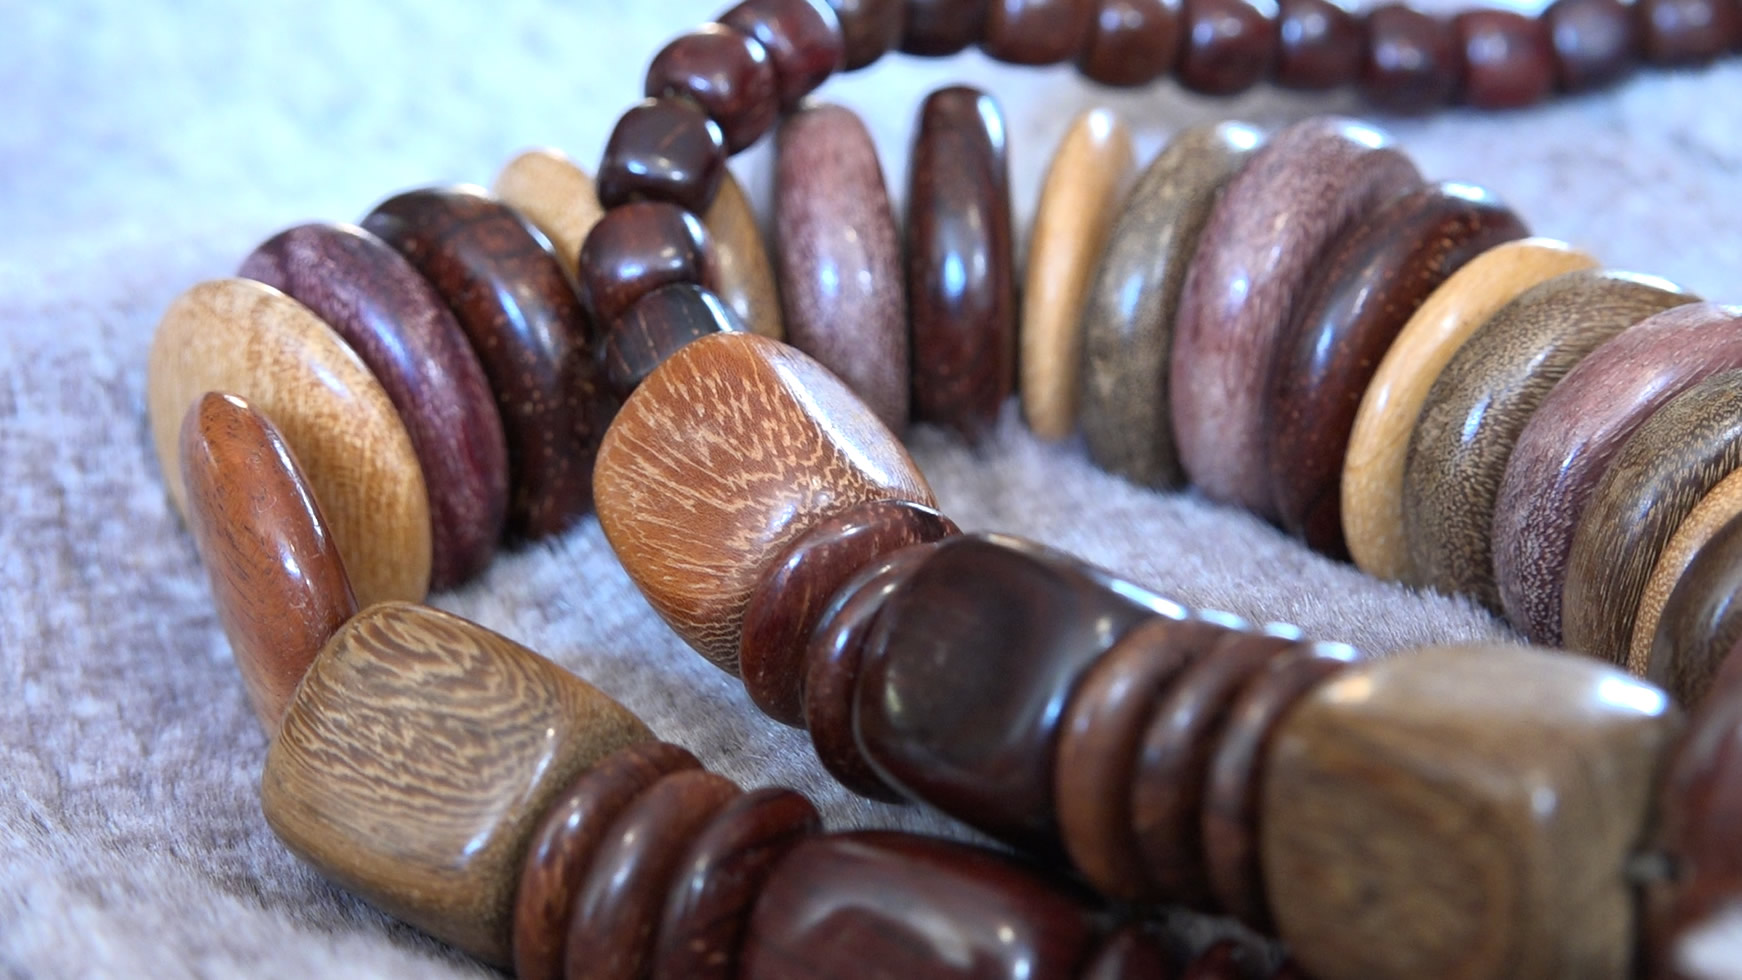 030 African Necklace 2.jpg